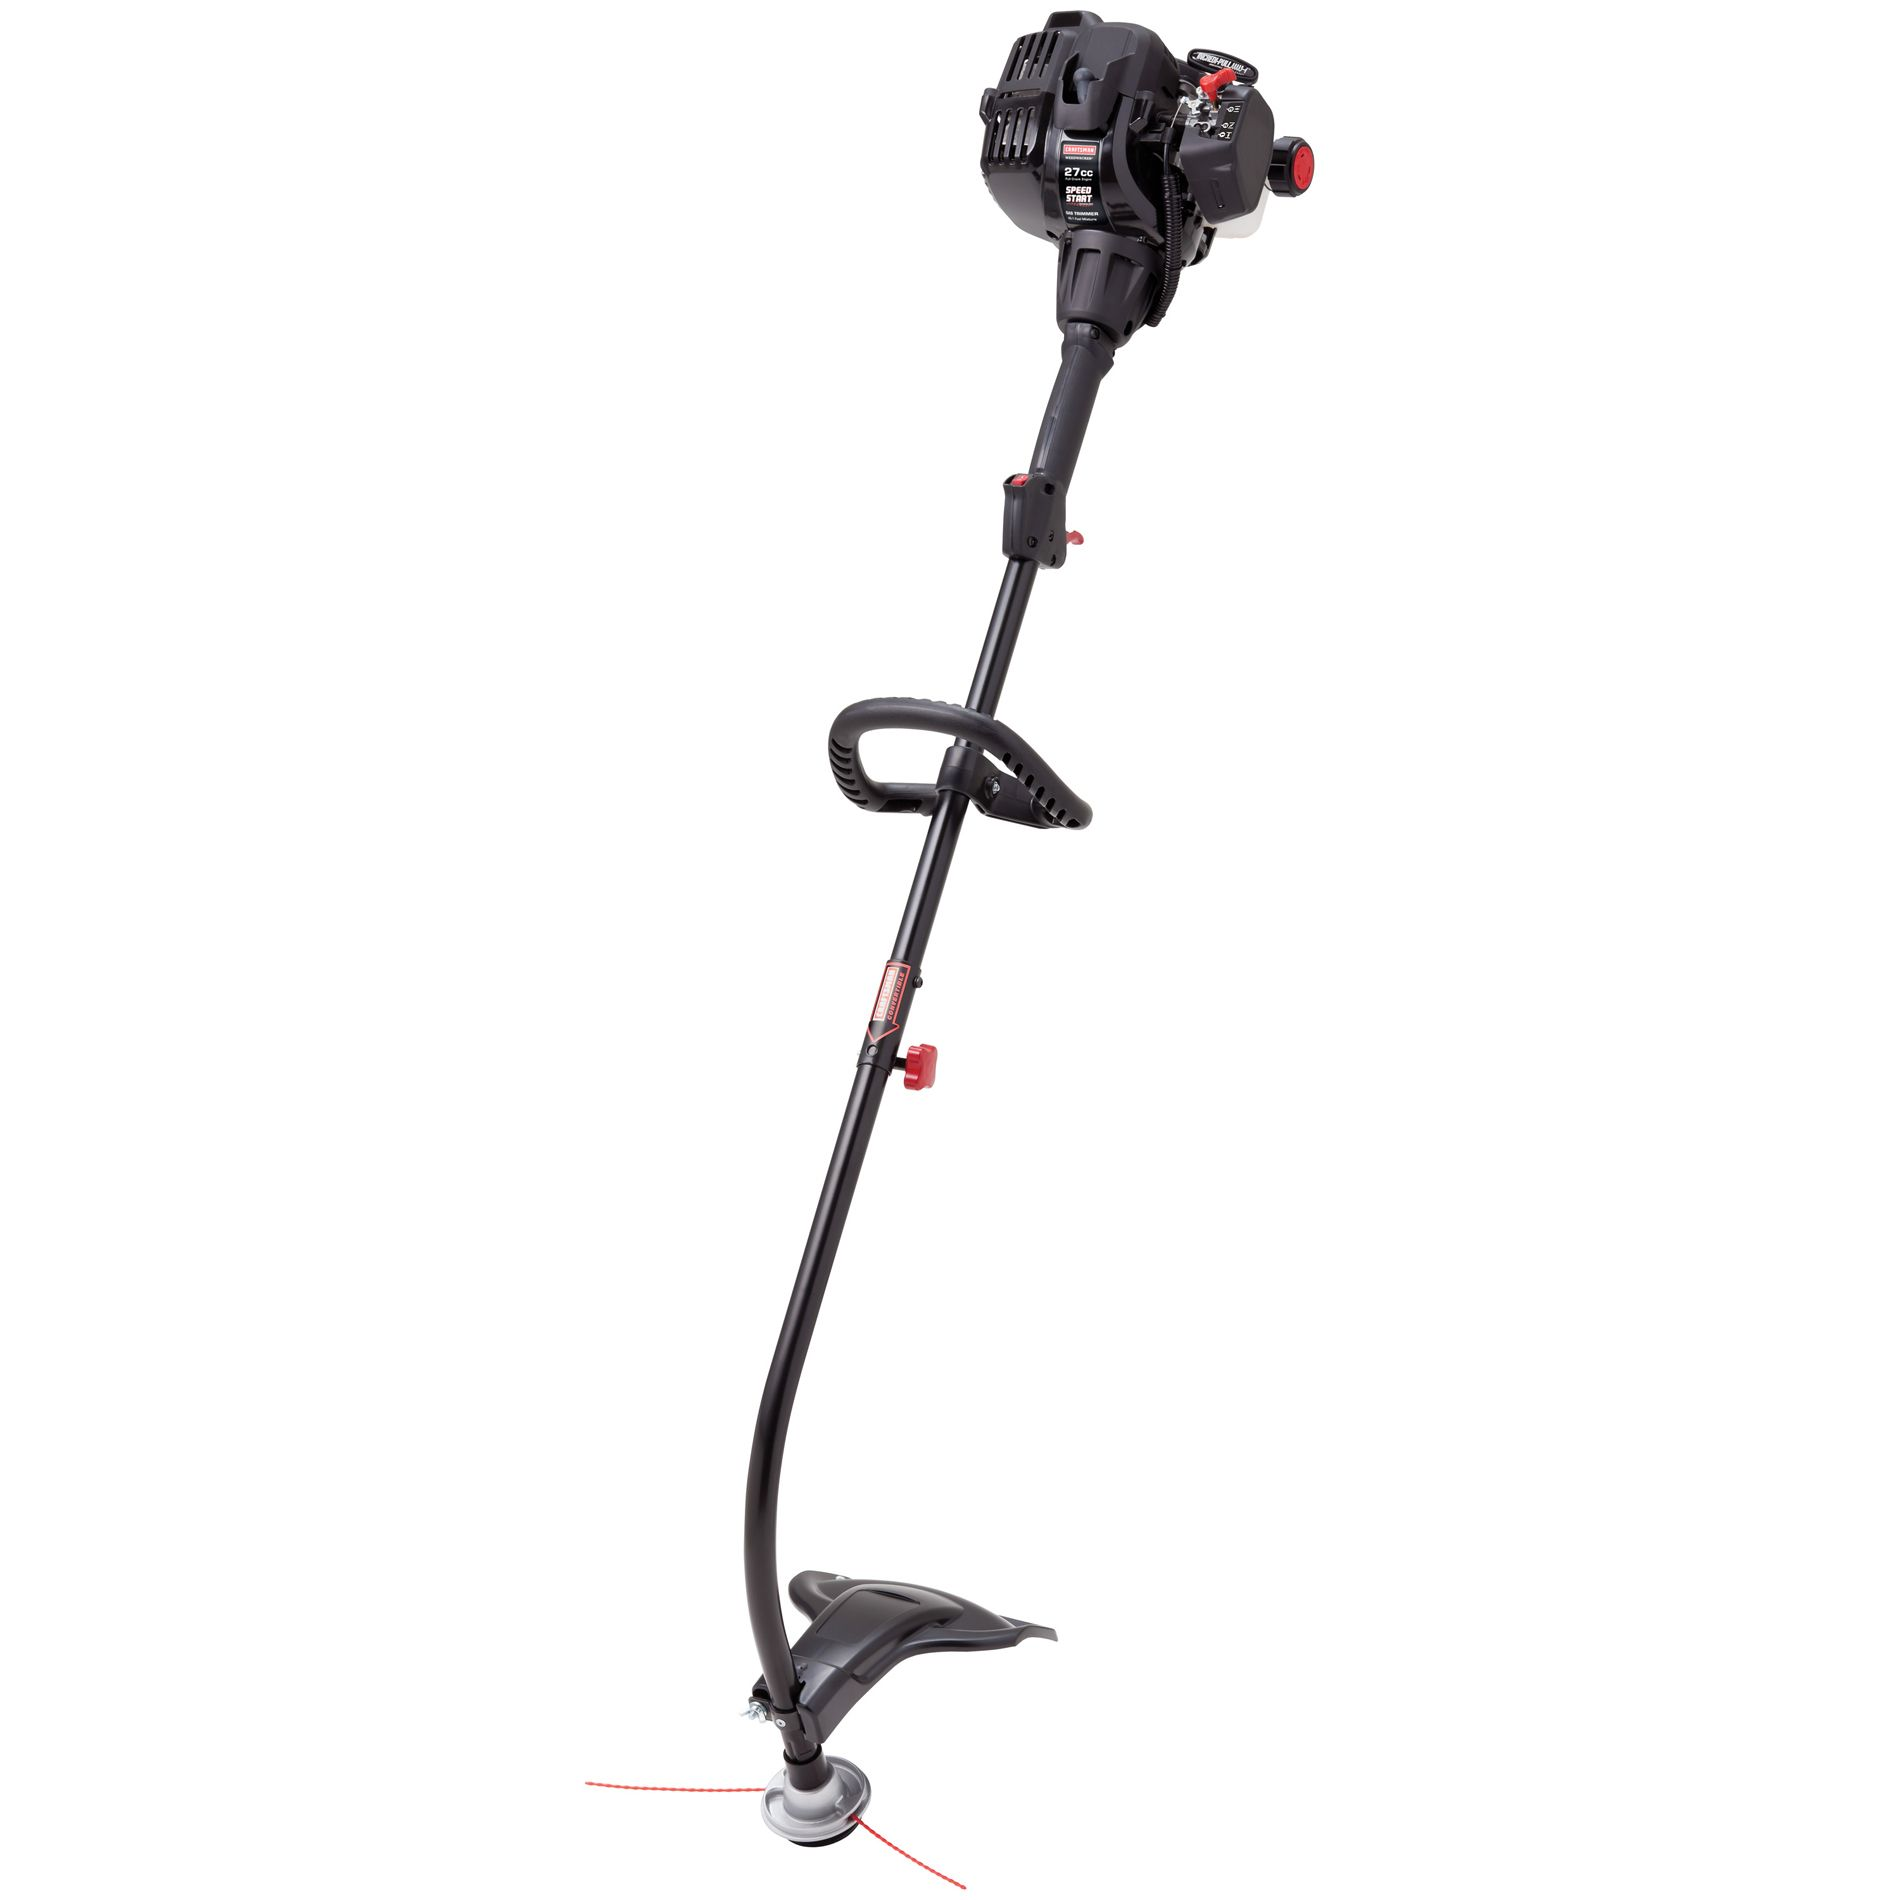 Craftsman Curved Shaft Weedwacker Trimmer: Powerful